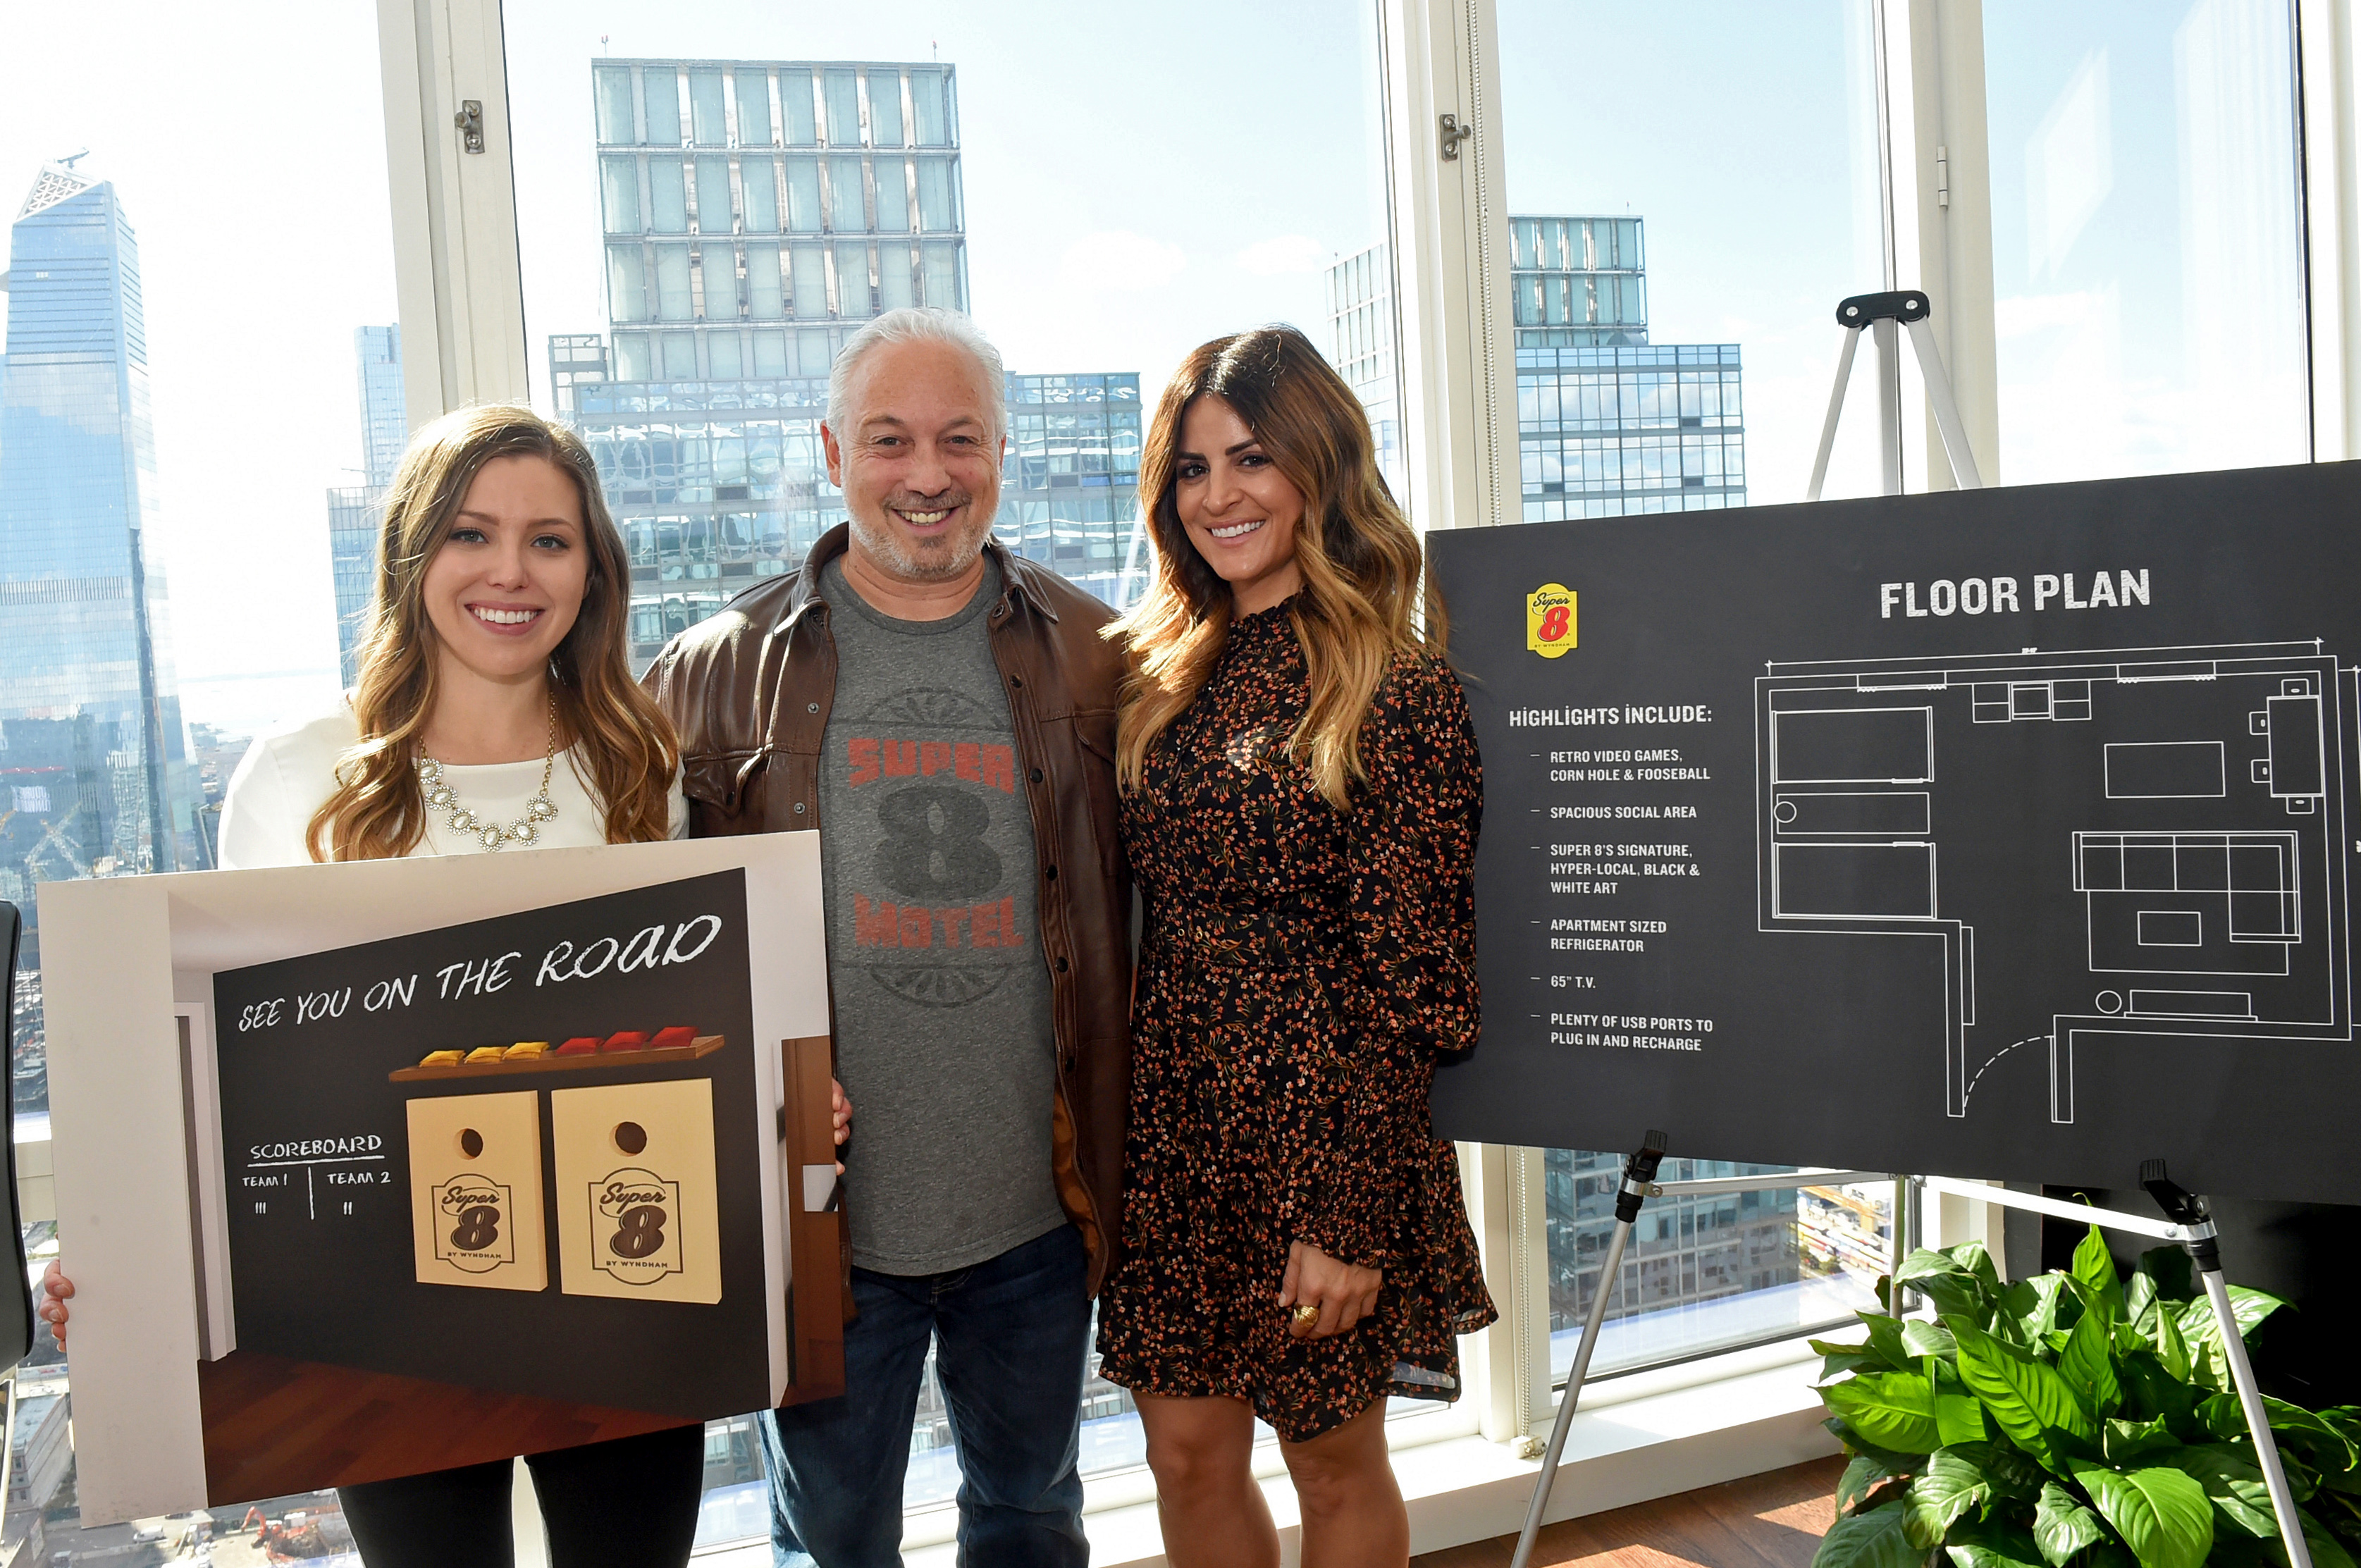 From left: Candice Buttars, undergrad design student at Utah State University and winner of the Room8 Design Challenge; Mike Mueller, Super 8 brand president; and Alison Victoria, celebrity interior designer and TV personality, show the floor plan of the new Super 8 by Wyndham Room8 design.